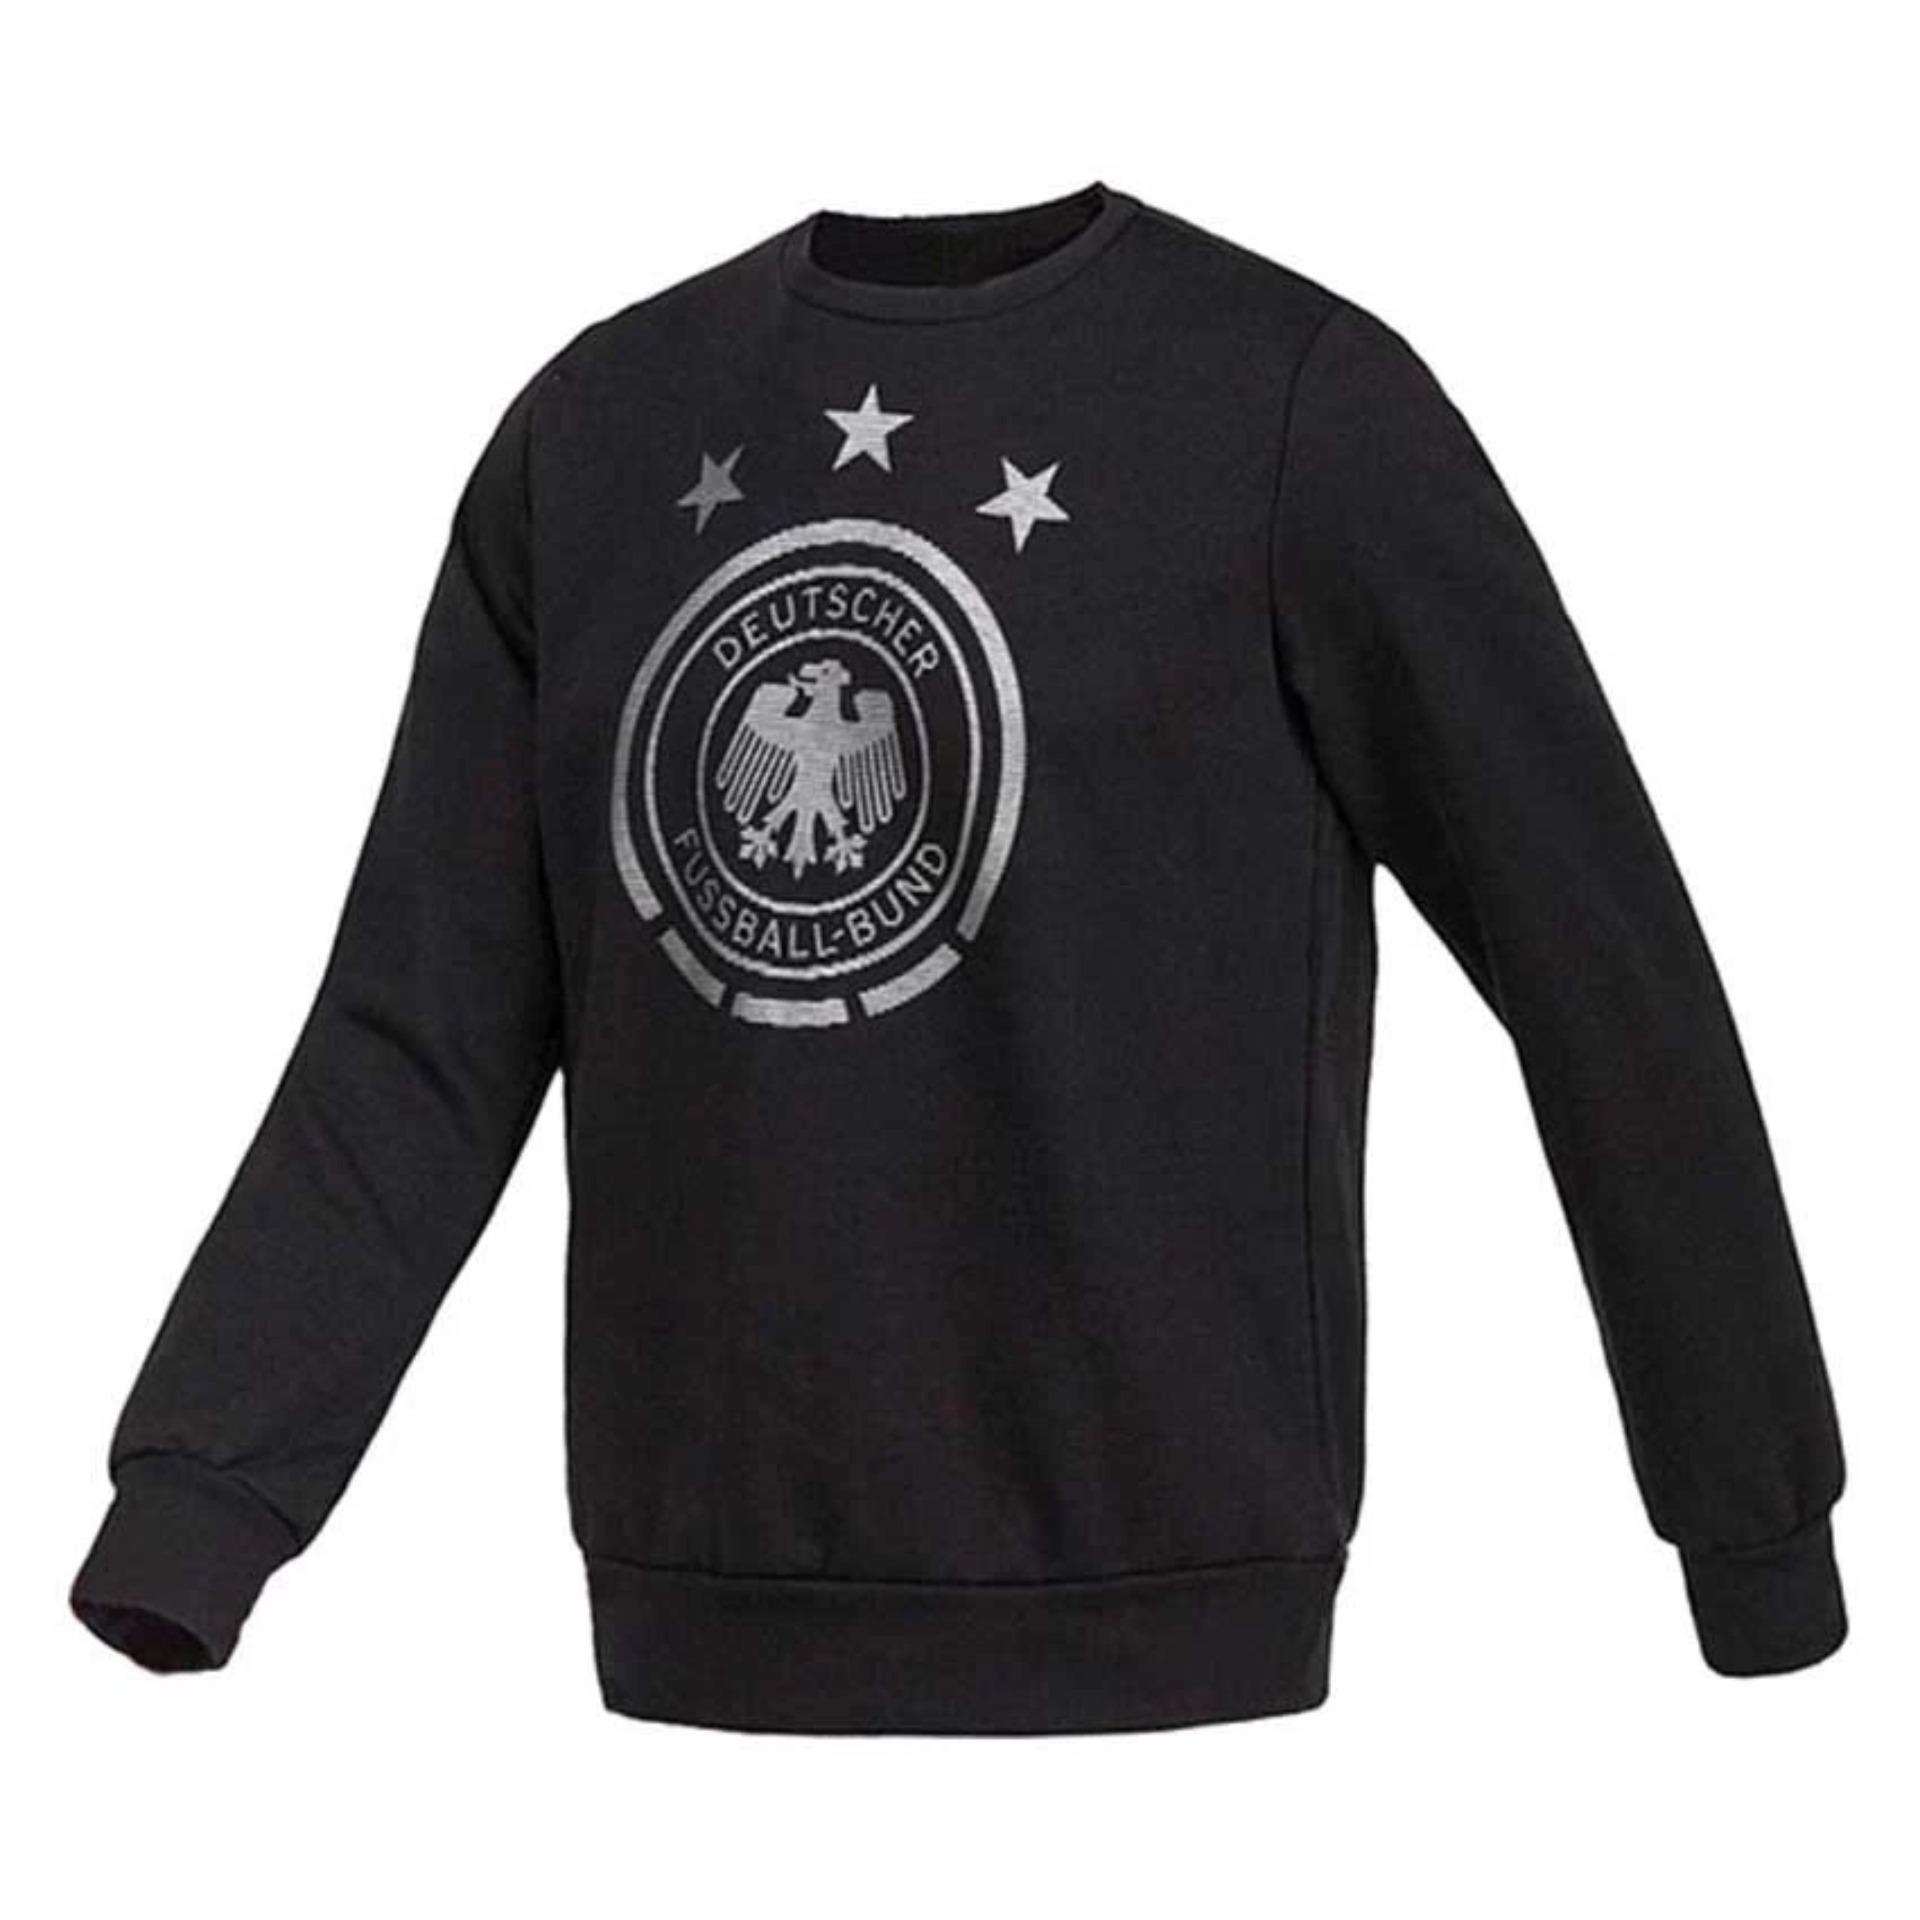 Jual Beli Sweater Germany Hitam